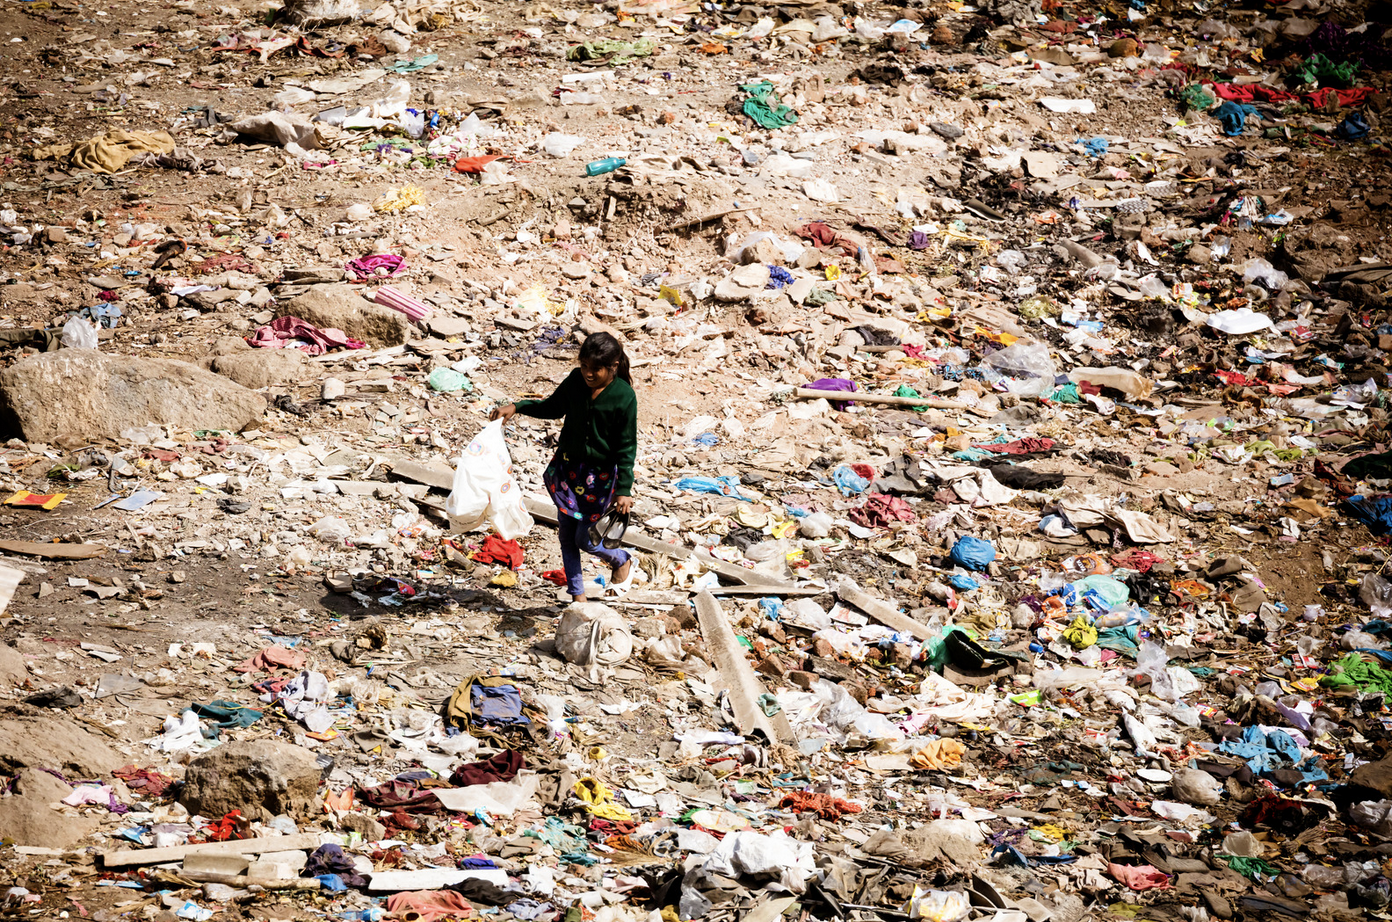 Will women waste pickers benefit from a new UN deal on plastic waste trade?